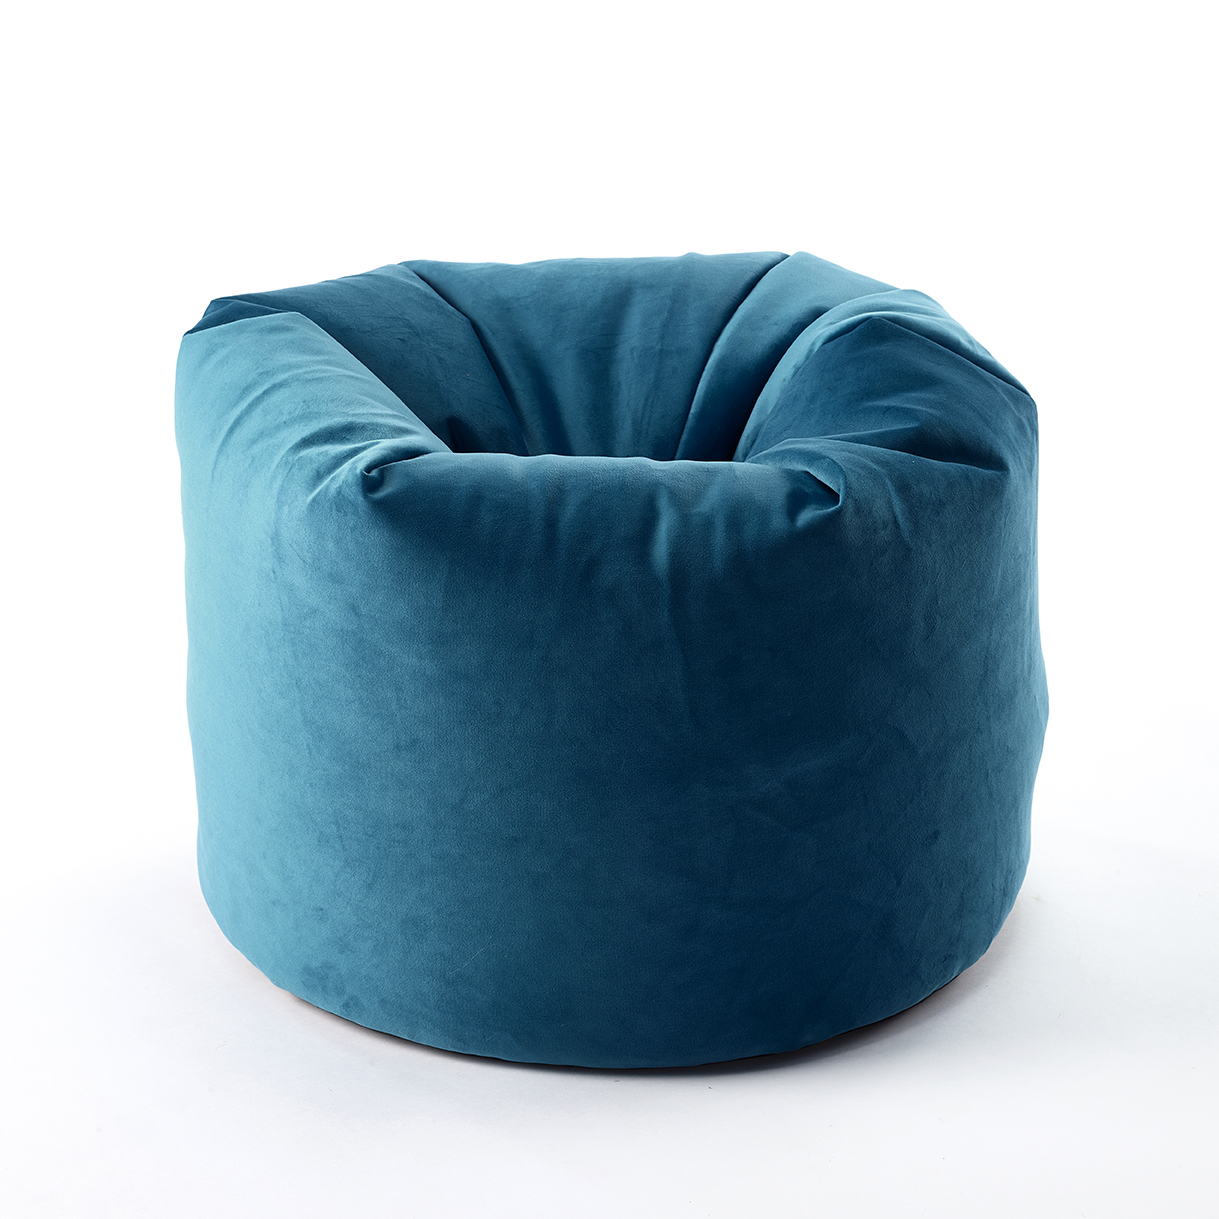 The Home Furnishings Company Teal Velvet Style Luxury Bean Bag 50 x 60cms